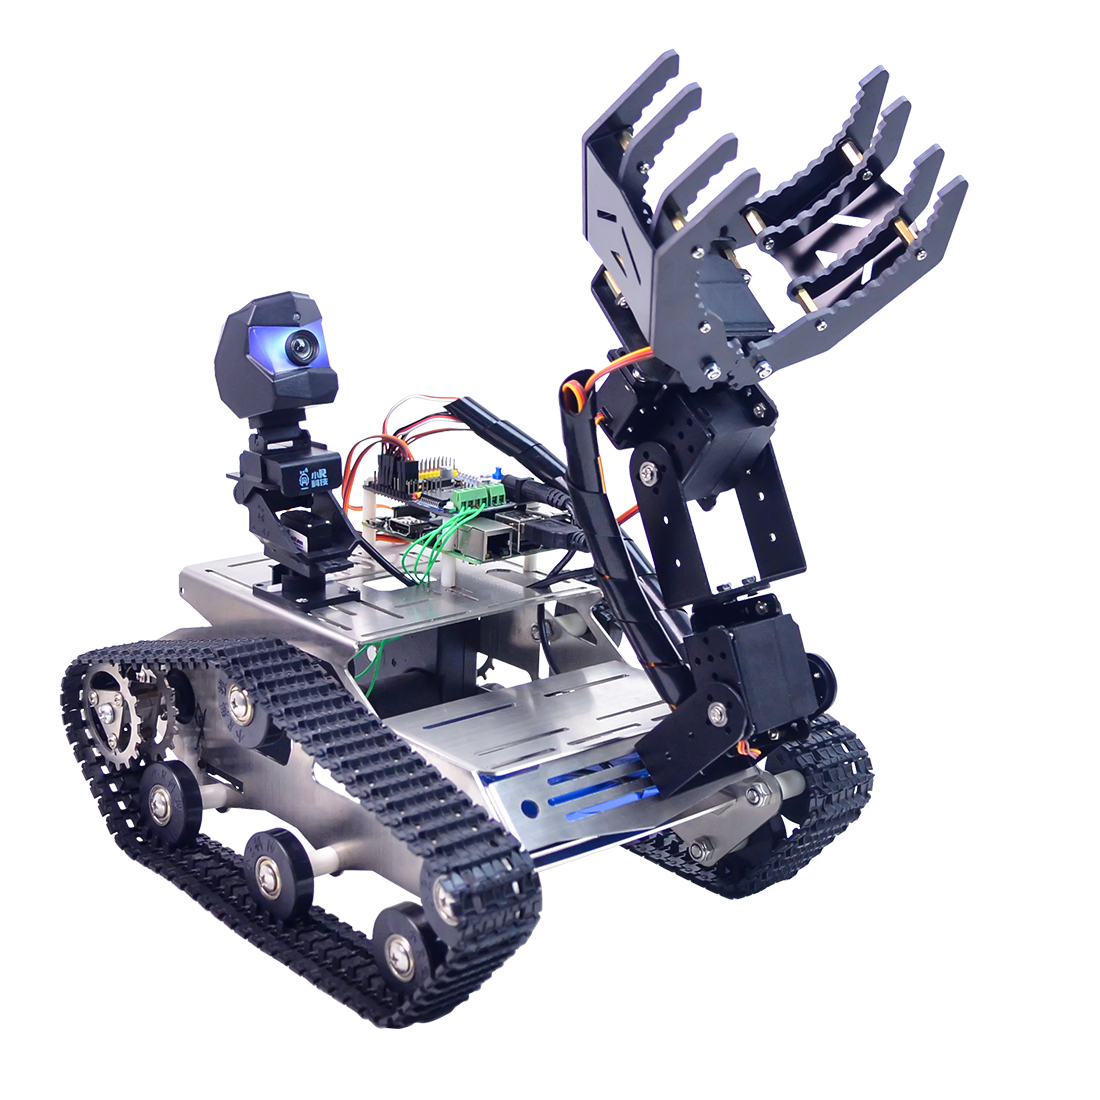 Programmable TH WiFi  FPV Tank Robot Car Kit With Arm For  Arduino MEGA -Line Patrol Obstacle Avoidance Version Large Small Claw